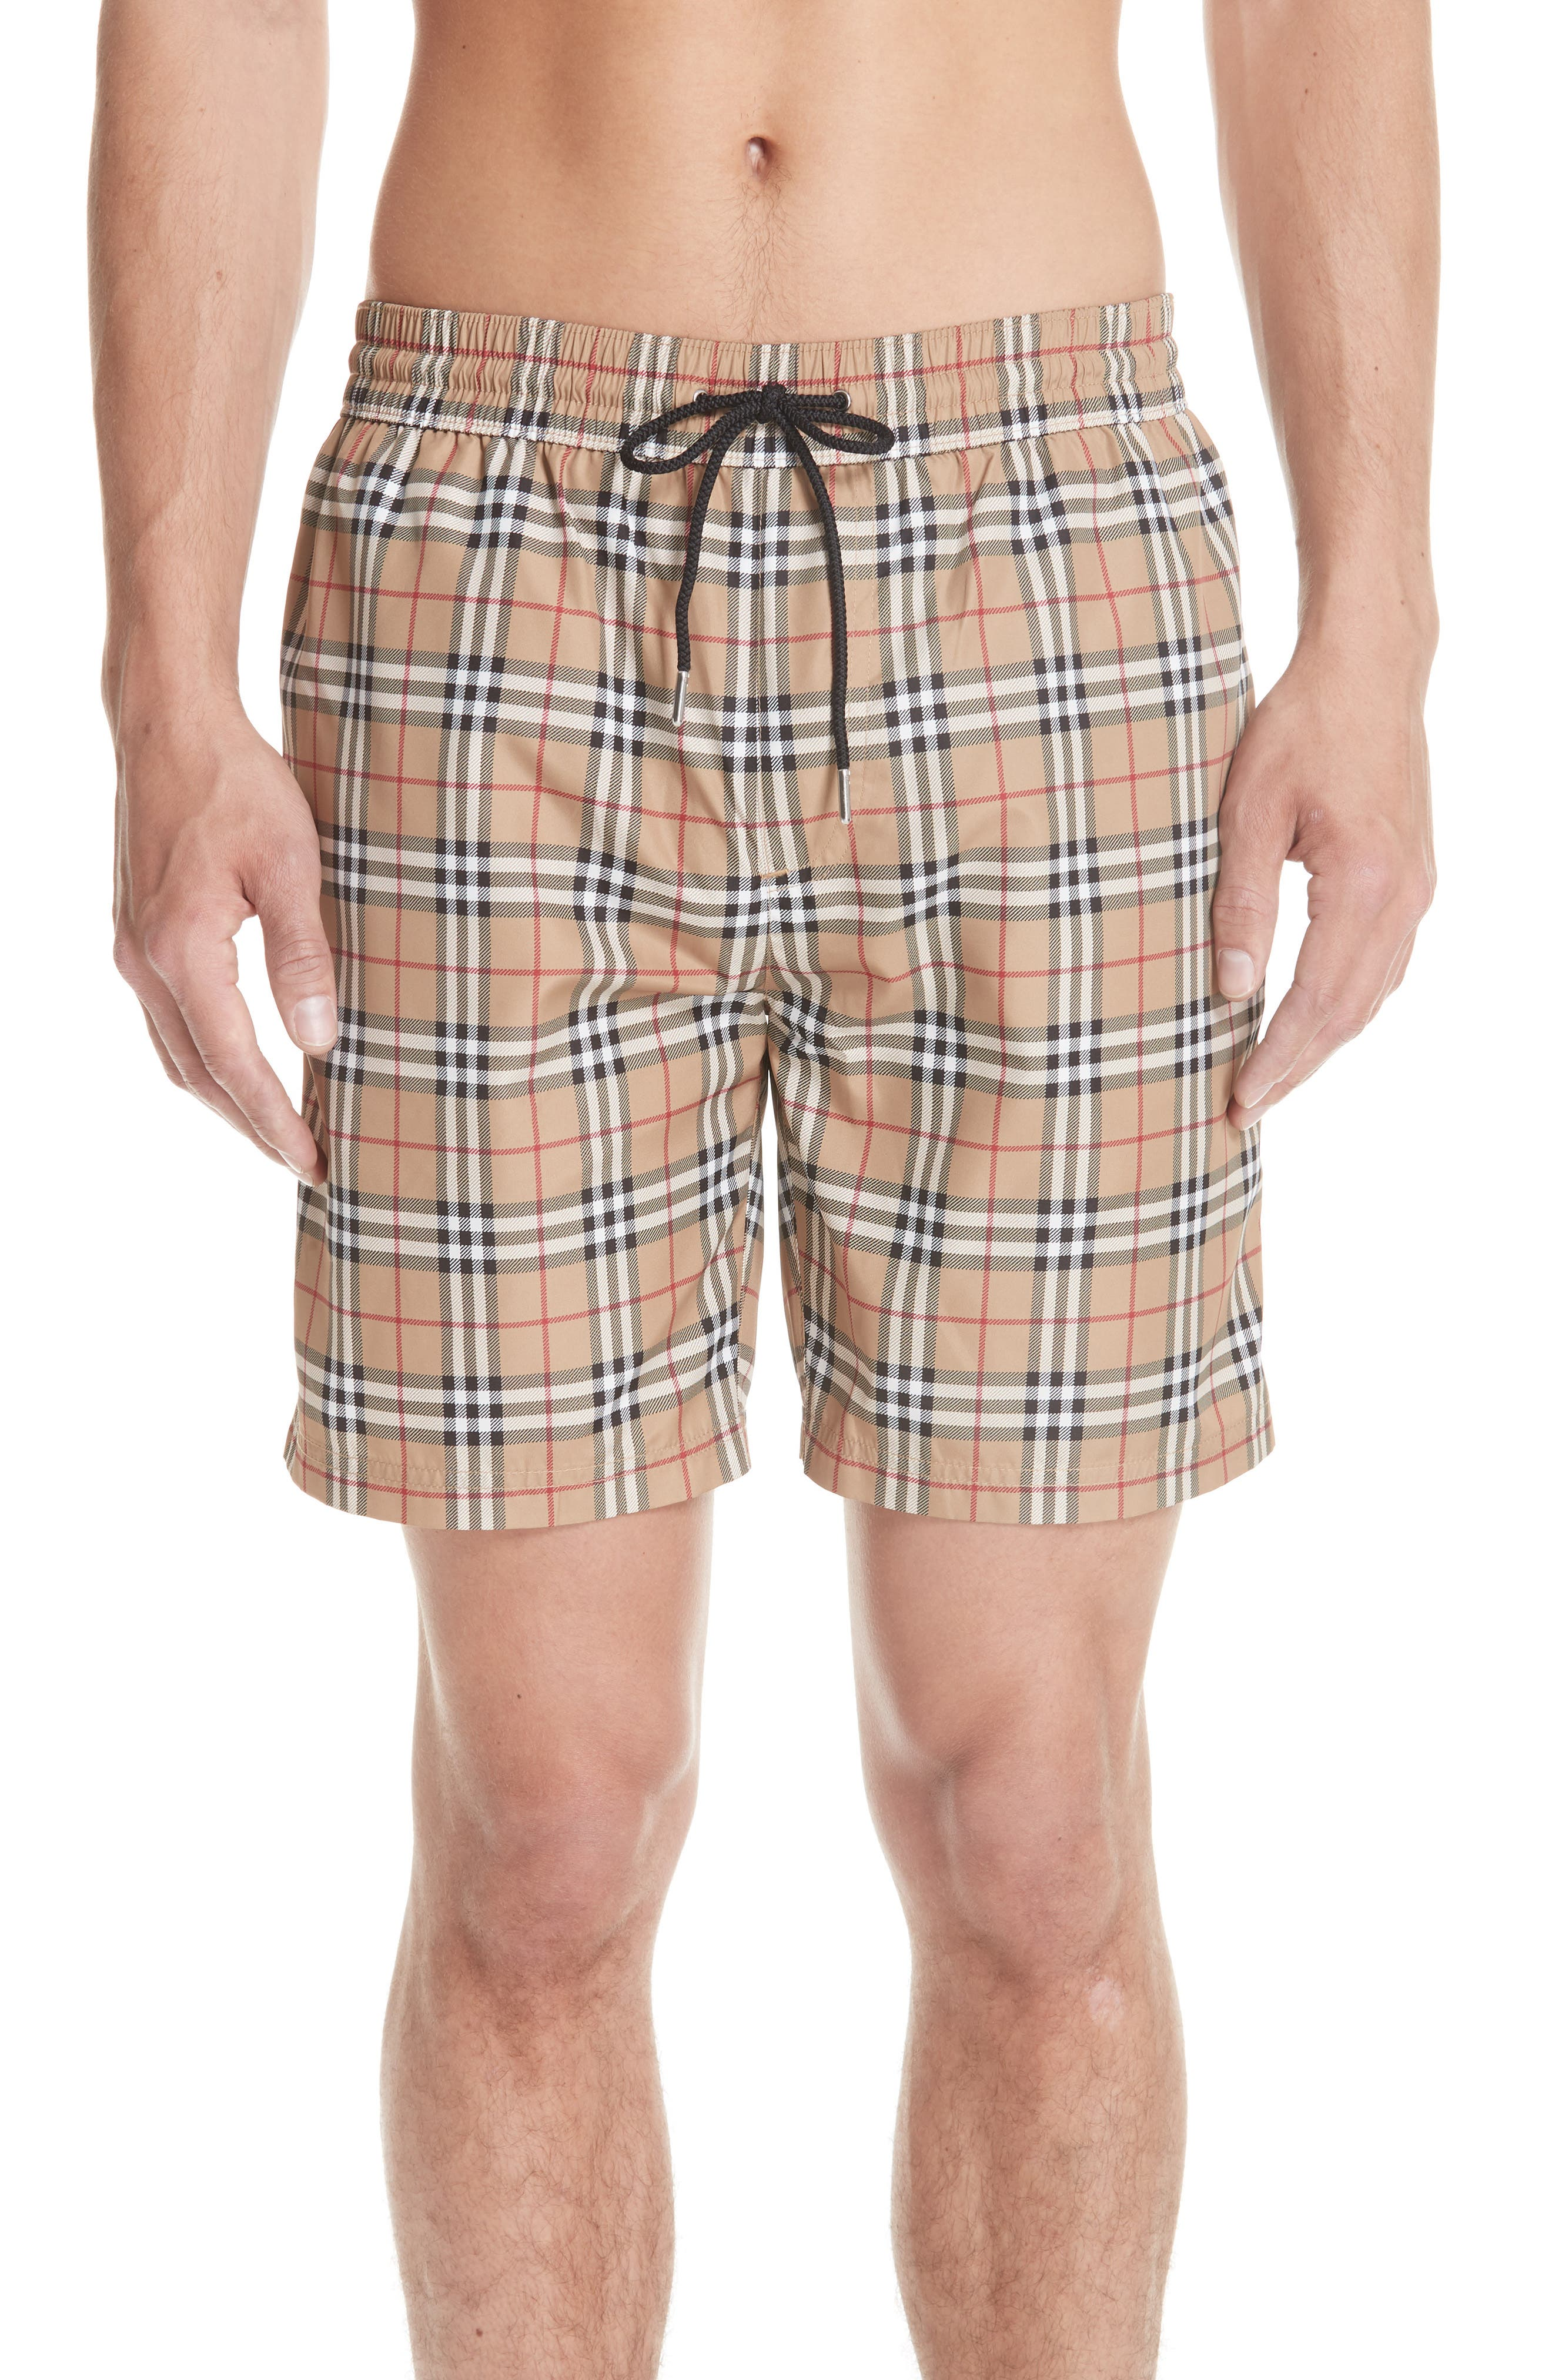 Guides New Check Swim Trunks,                             Main thumbnail 1, color,                             CAMEL